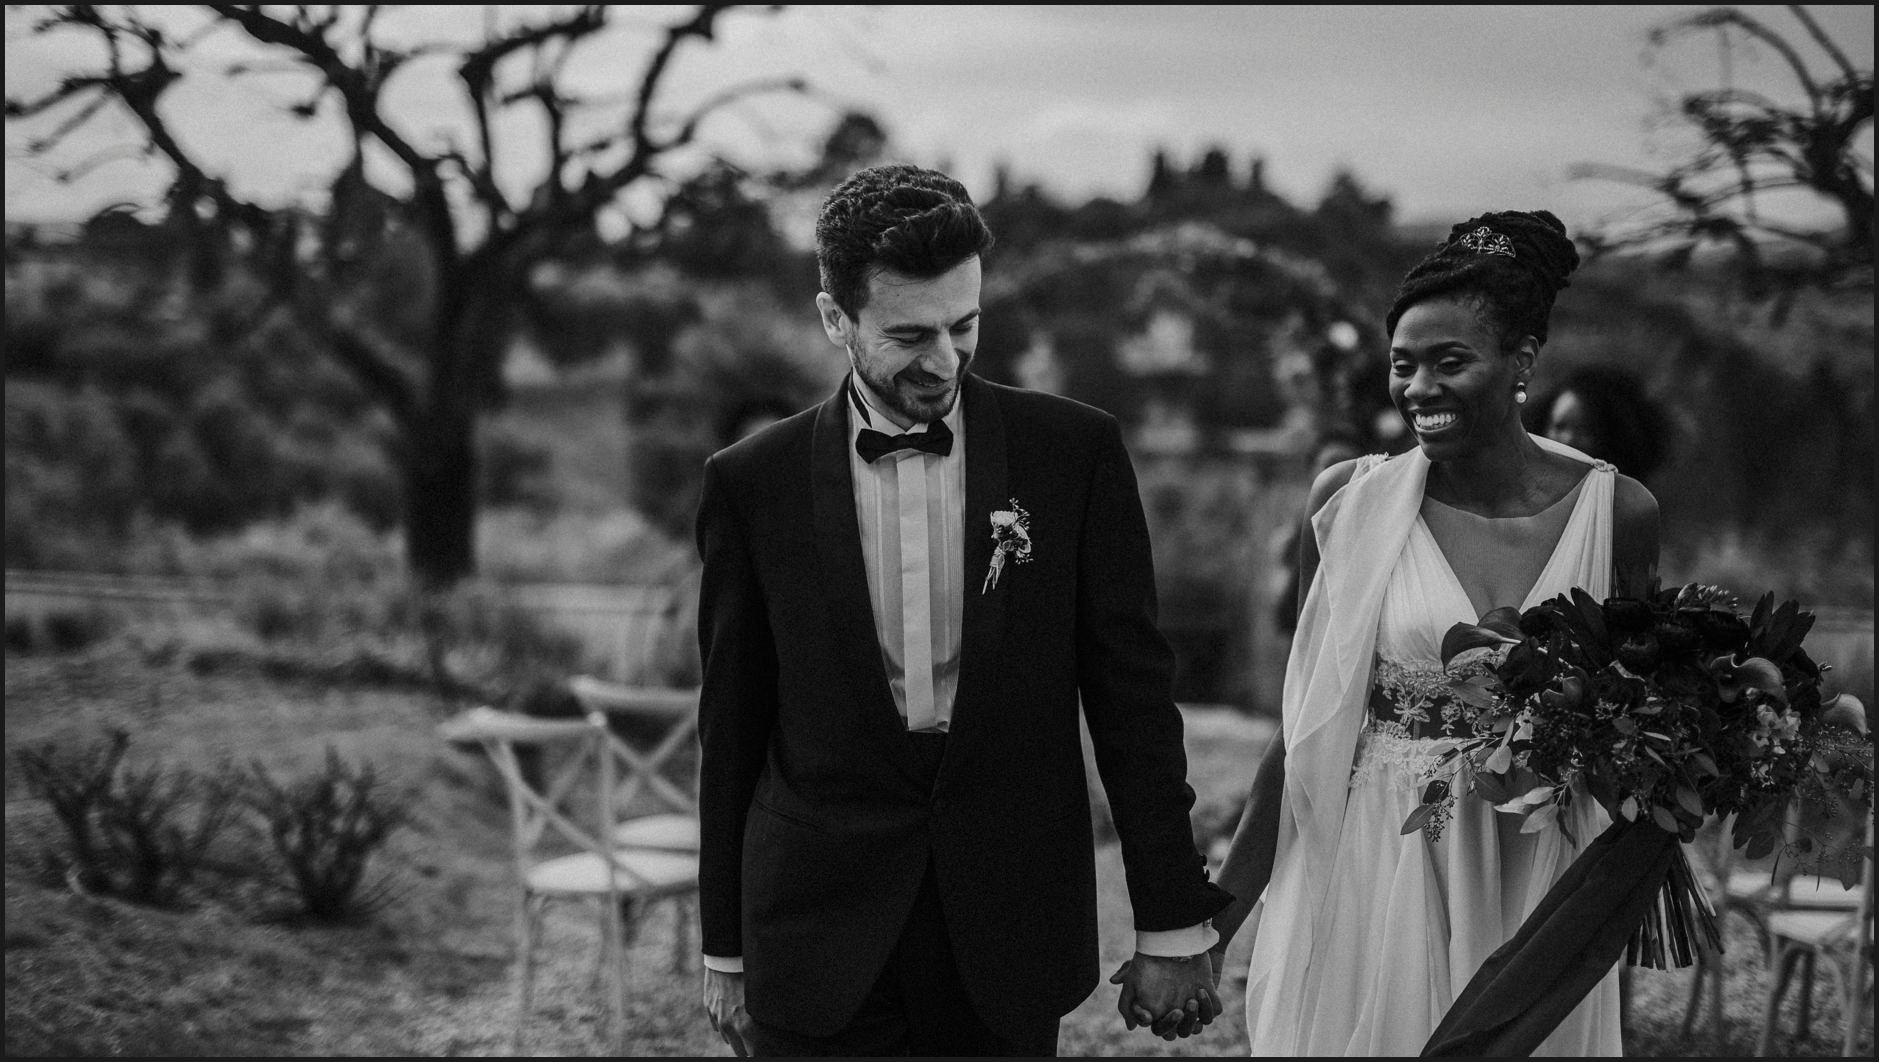 black and white, bride, groom, wedding, ceremony, villa medicea di lilliano, tuscany, holding hands